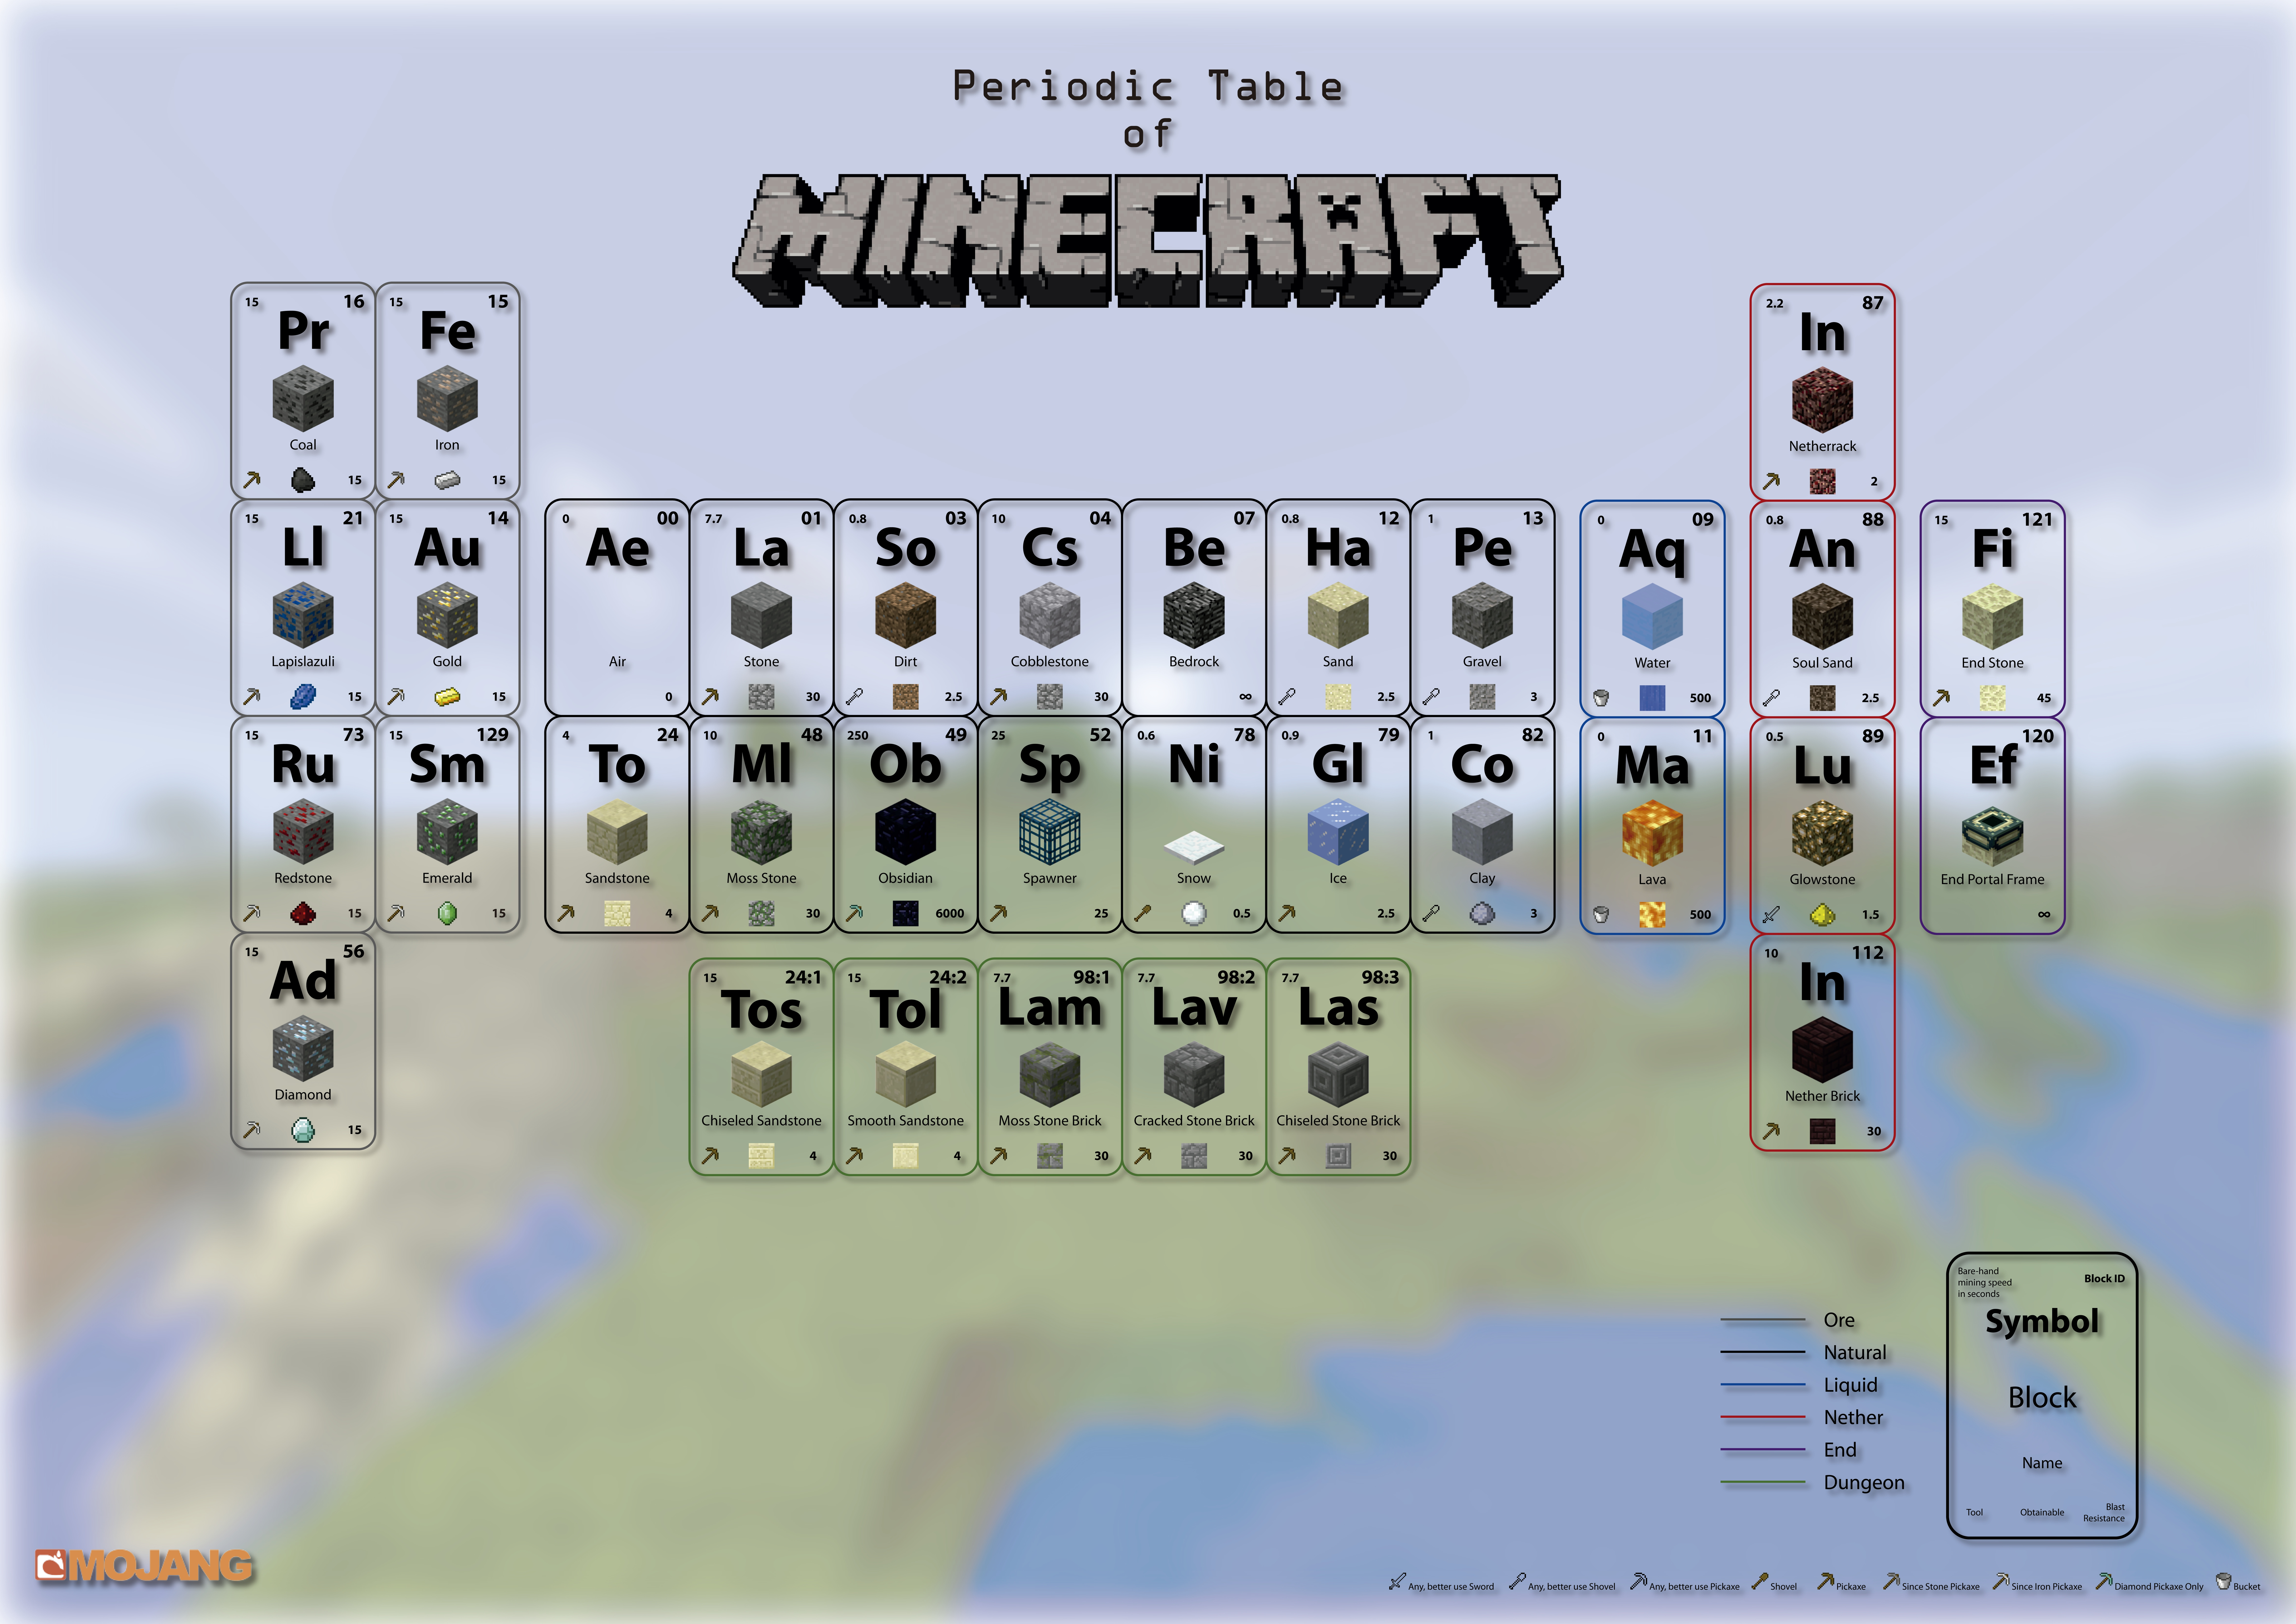 Periodic table of minecraft minecraft know your meme periodic table 7 pr fe in ad tos to las 112 in o symbol block dungeon urtaz Choice Image